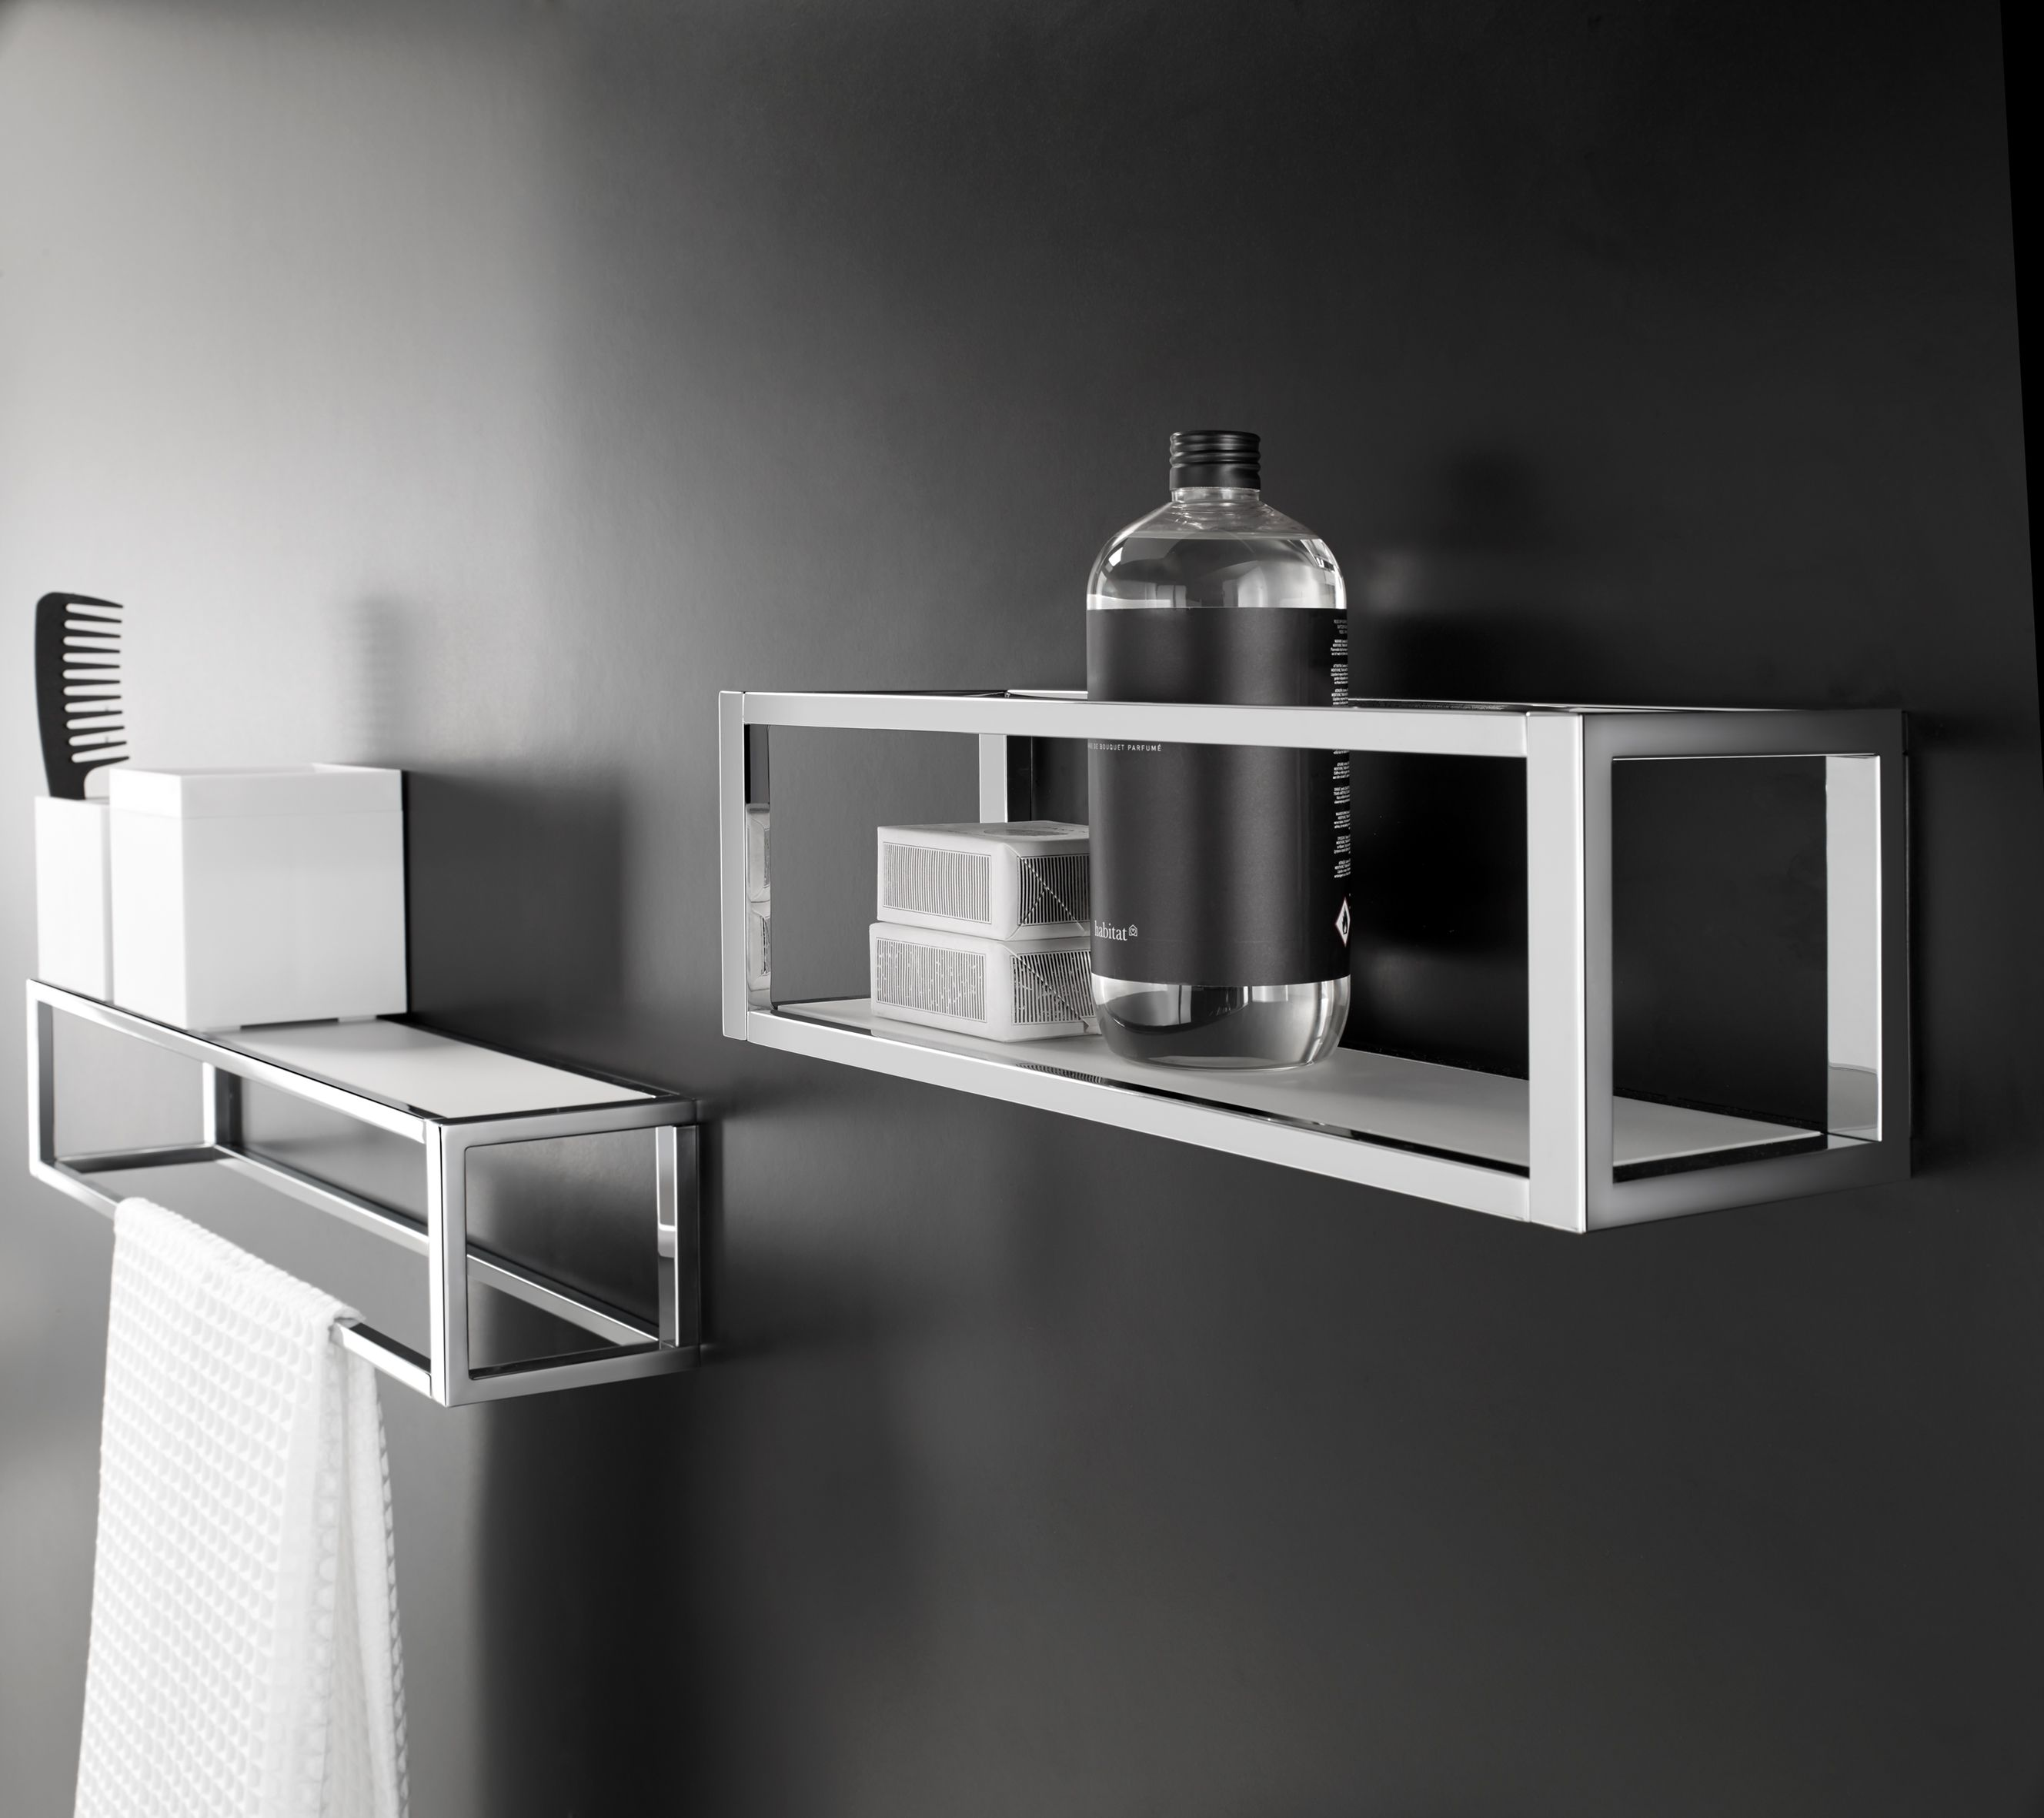 The Grid accessories collection by Cosmic. Design by Ricard Ferrer. Towel rack with shelf/basket.